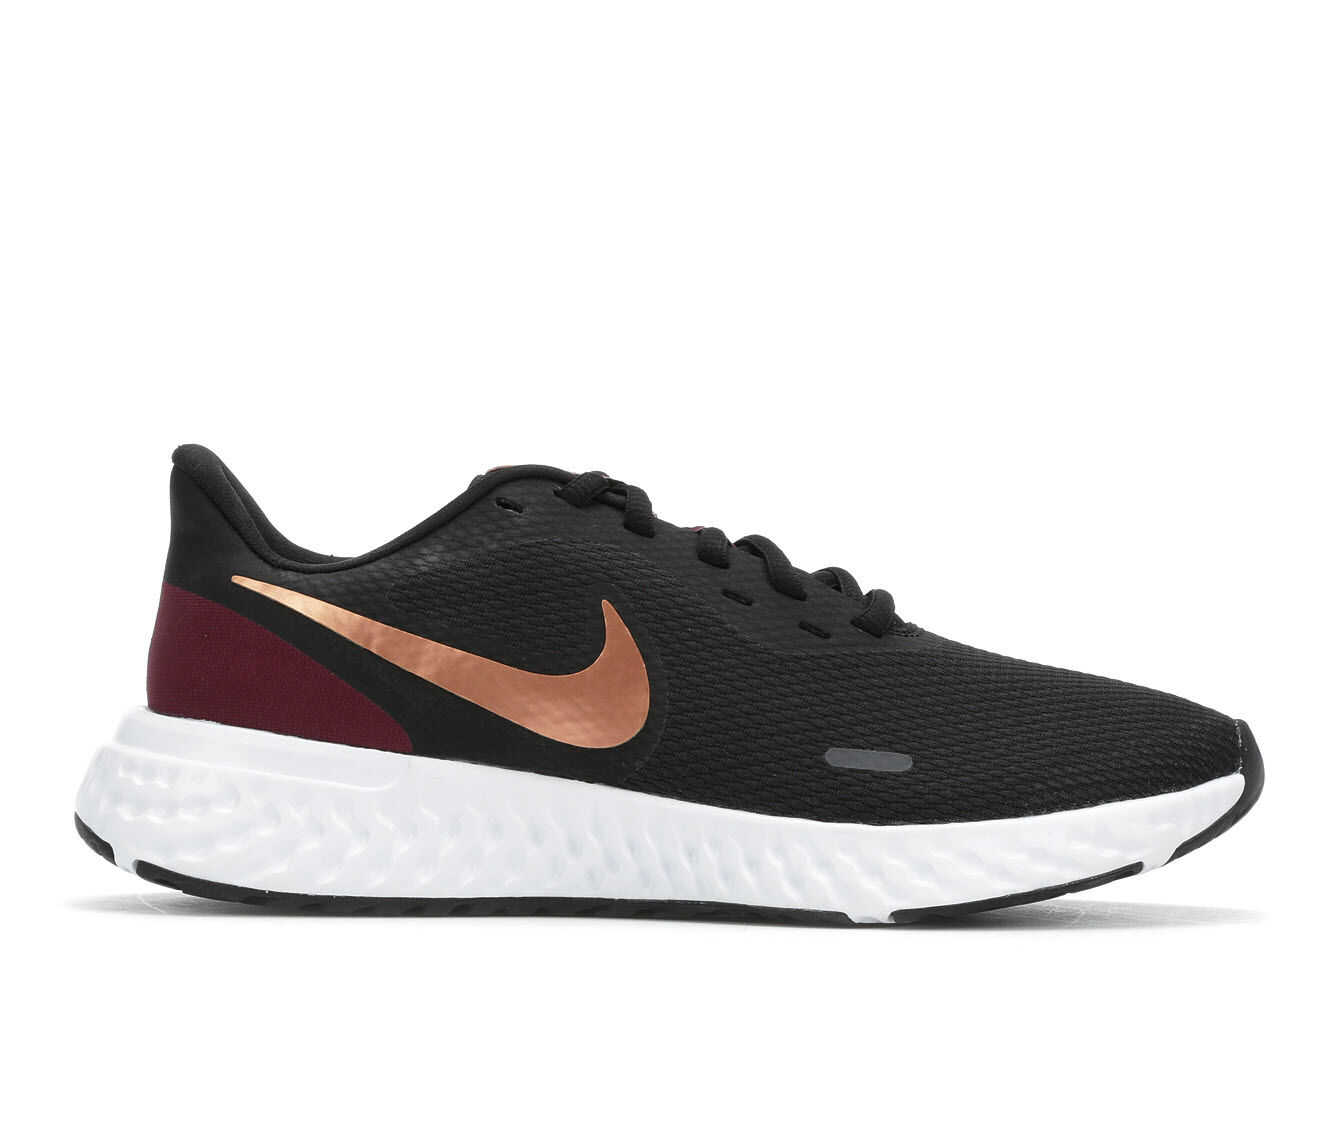 Women's Nike Shoes & Sneakers